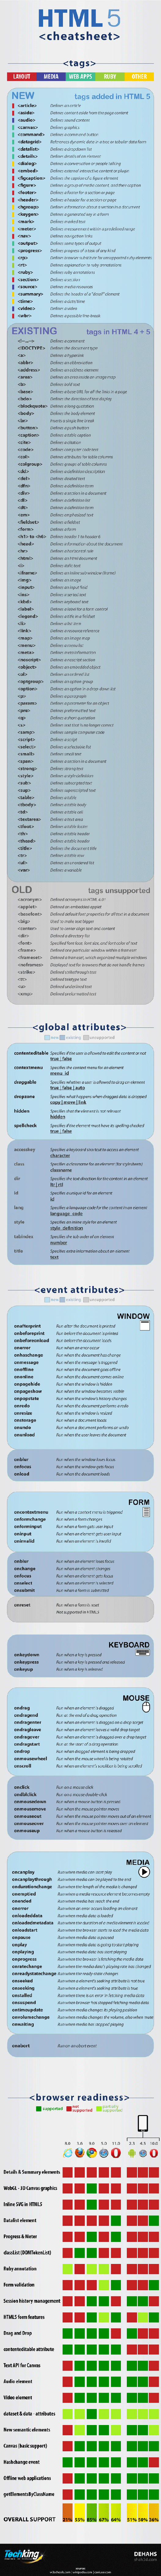 HTML5-Cheat sheet